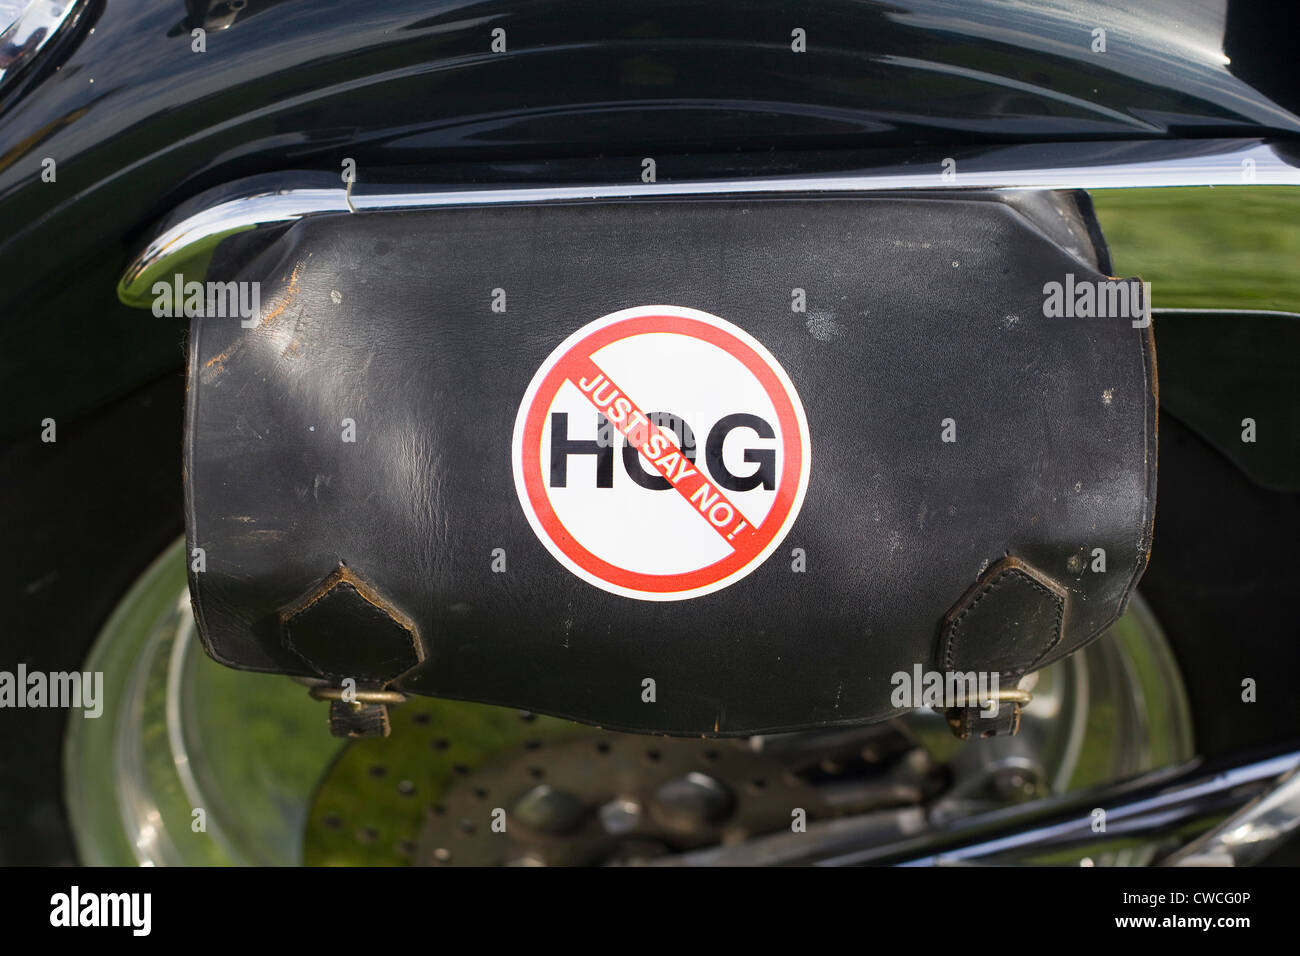 Saddle bag on a Harley Davidson Motorbike with a sticker saying Hog 'Just say no' - Stock Image